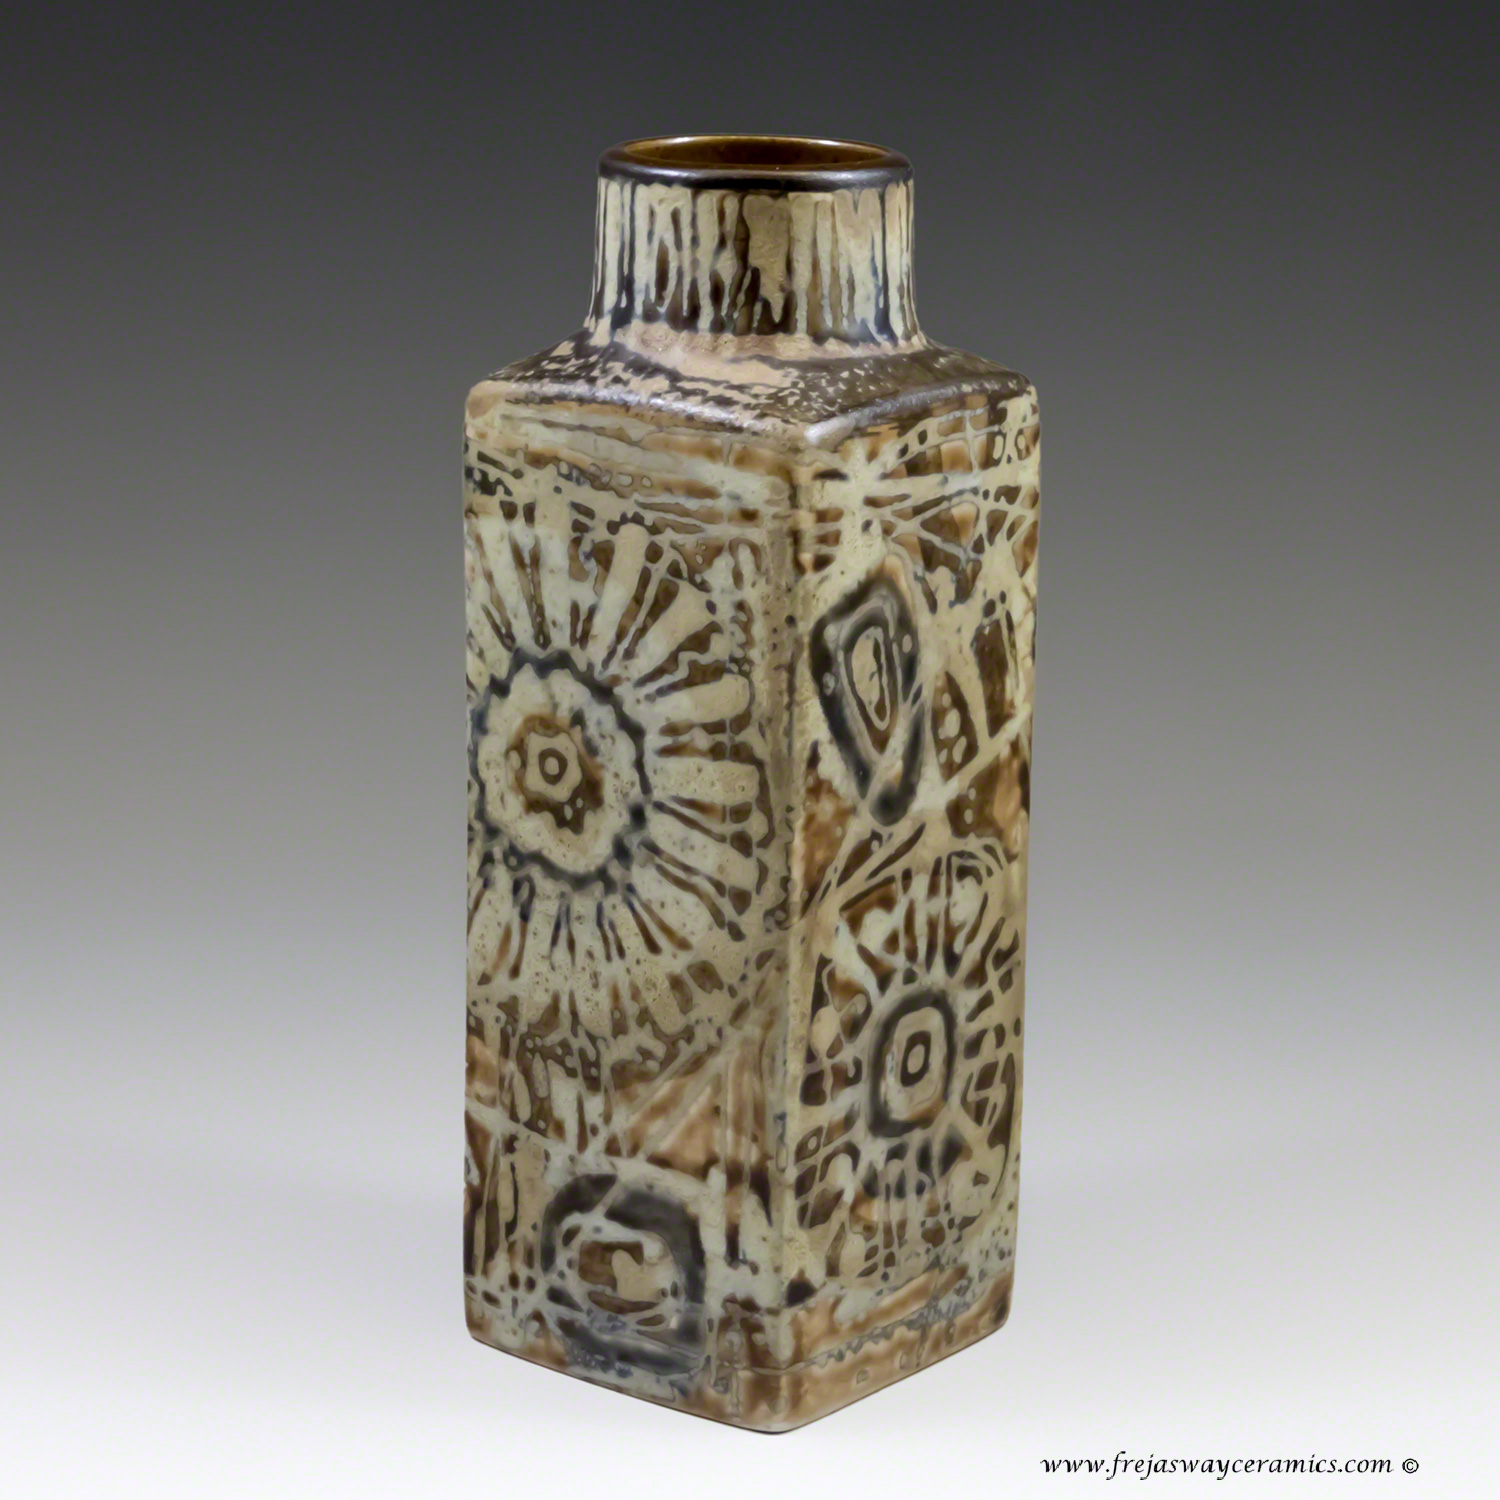 Royal copenhagen page 1 royal copenhagen small baca vase from the sunflower series by nils thorsson its unusual to reviewsmspy